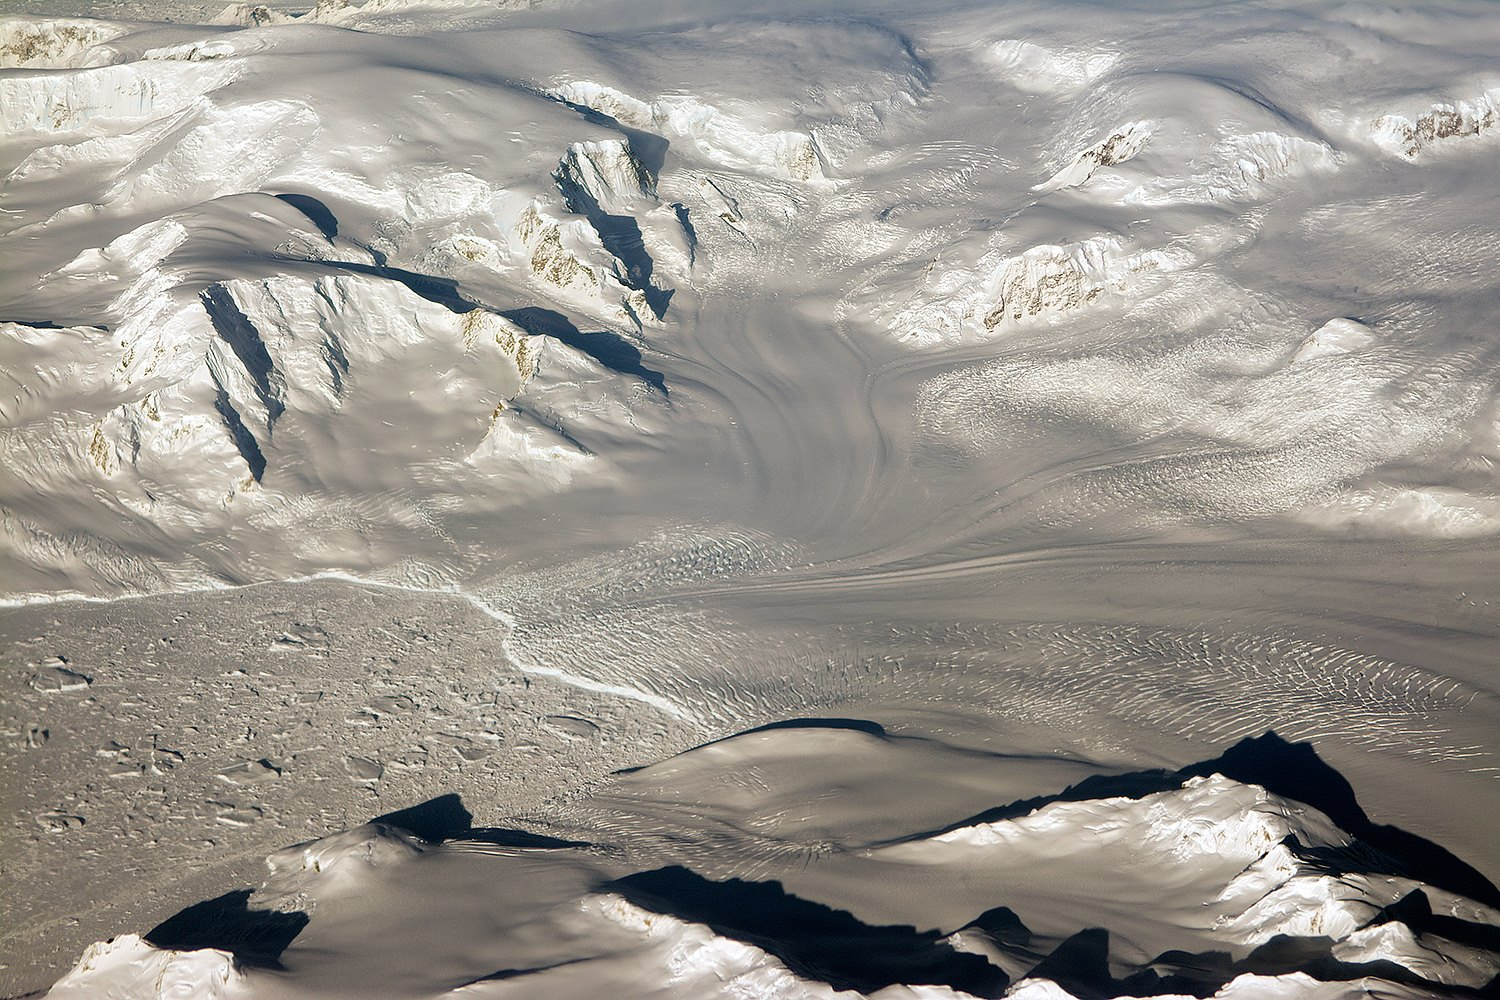 Glaciers and mountains in the evening sun seen on the return flight from West Antarctica on Oct. 29, 2014.